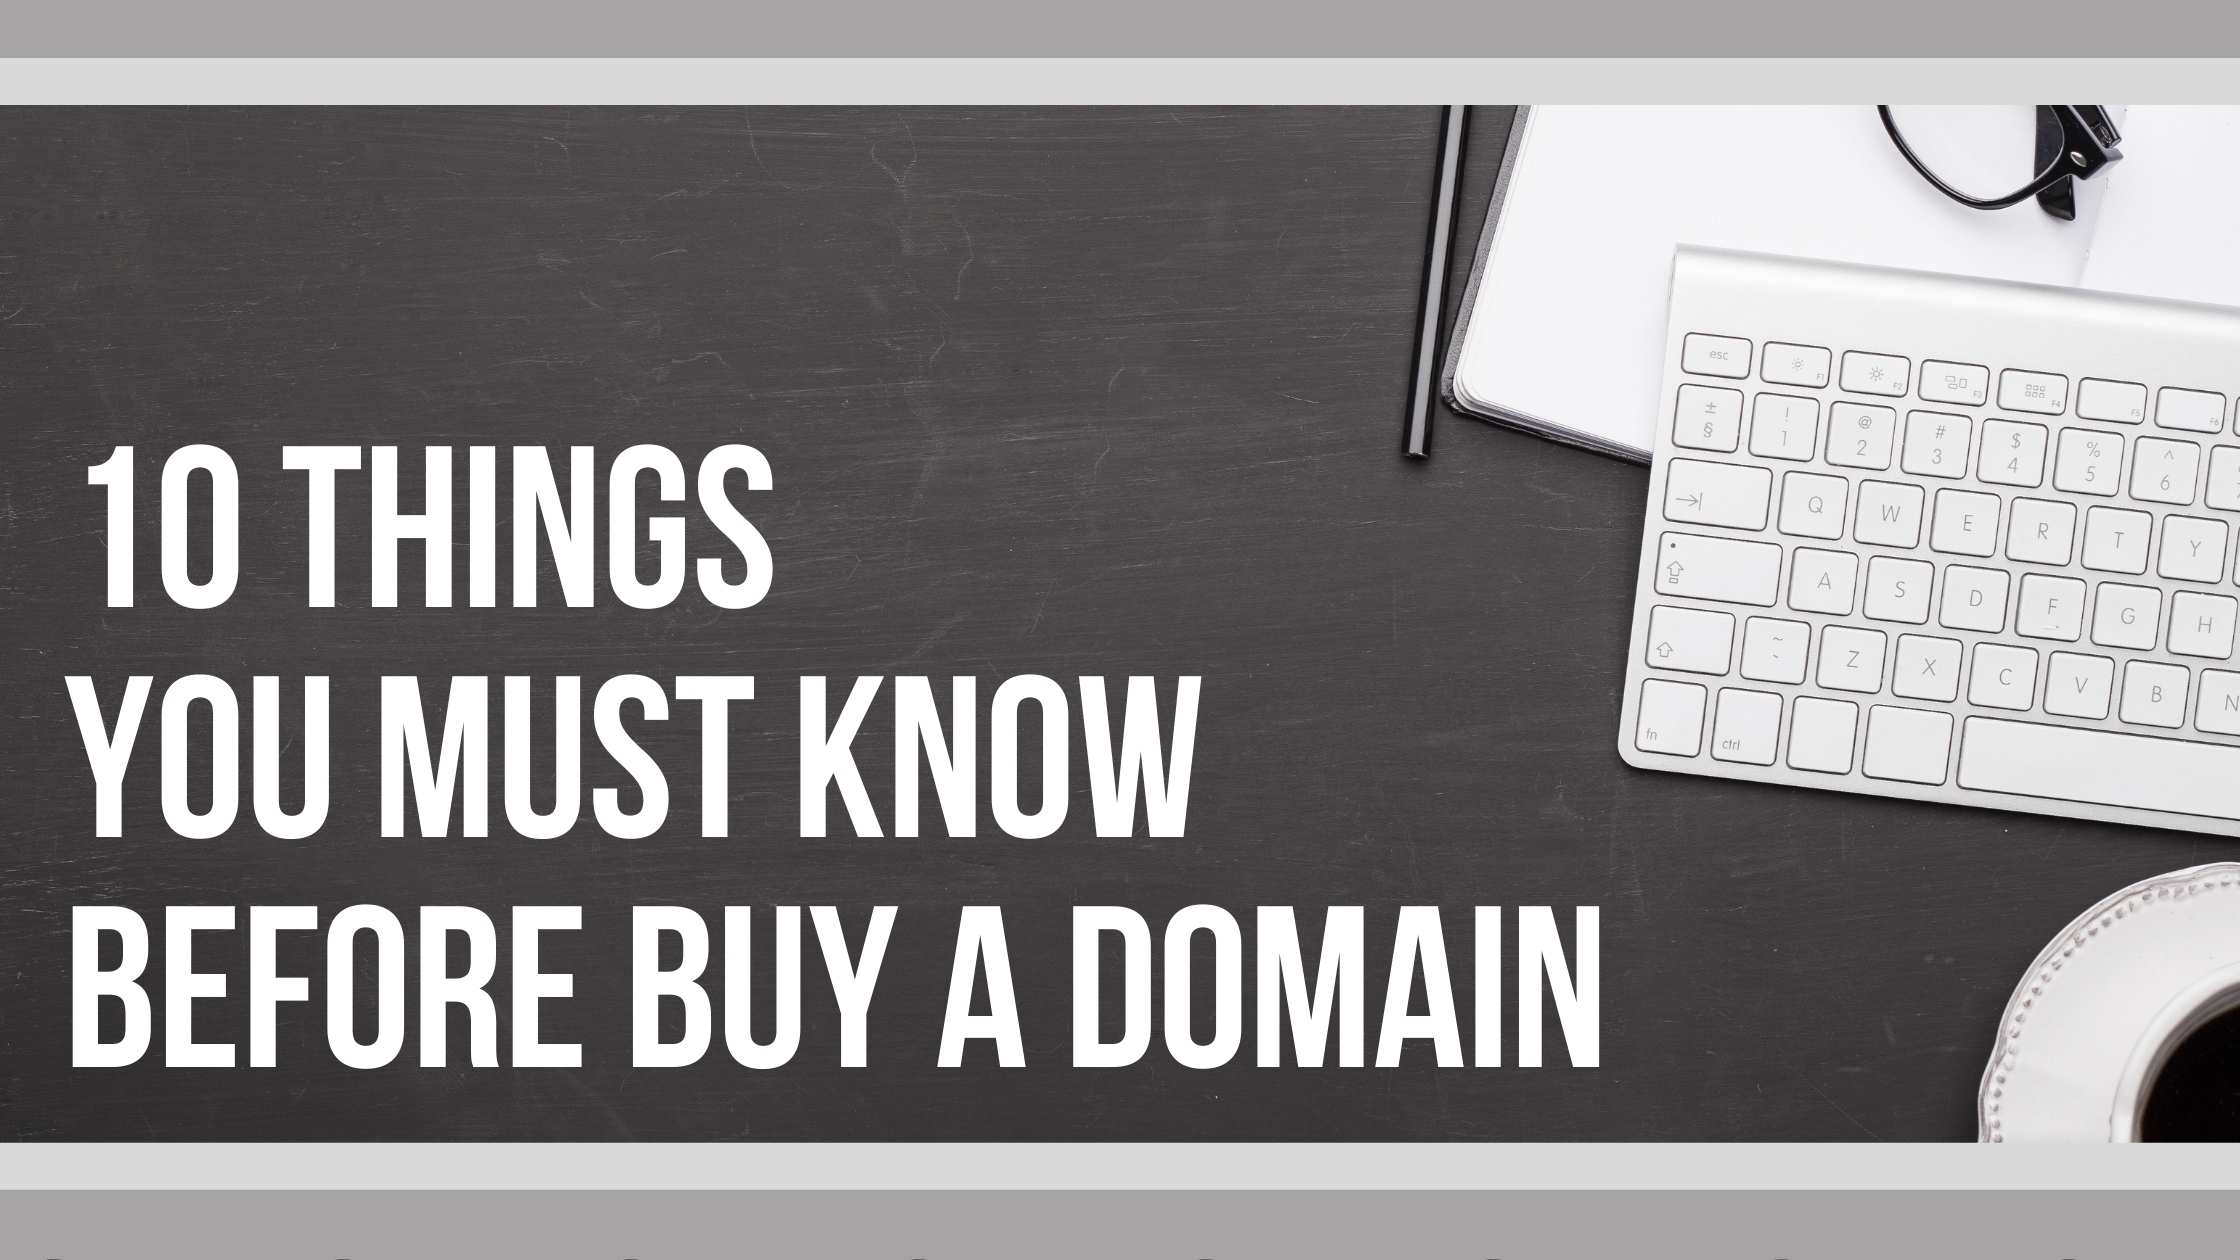 10 Things You Must Know Before Buy A Domain